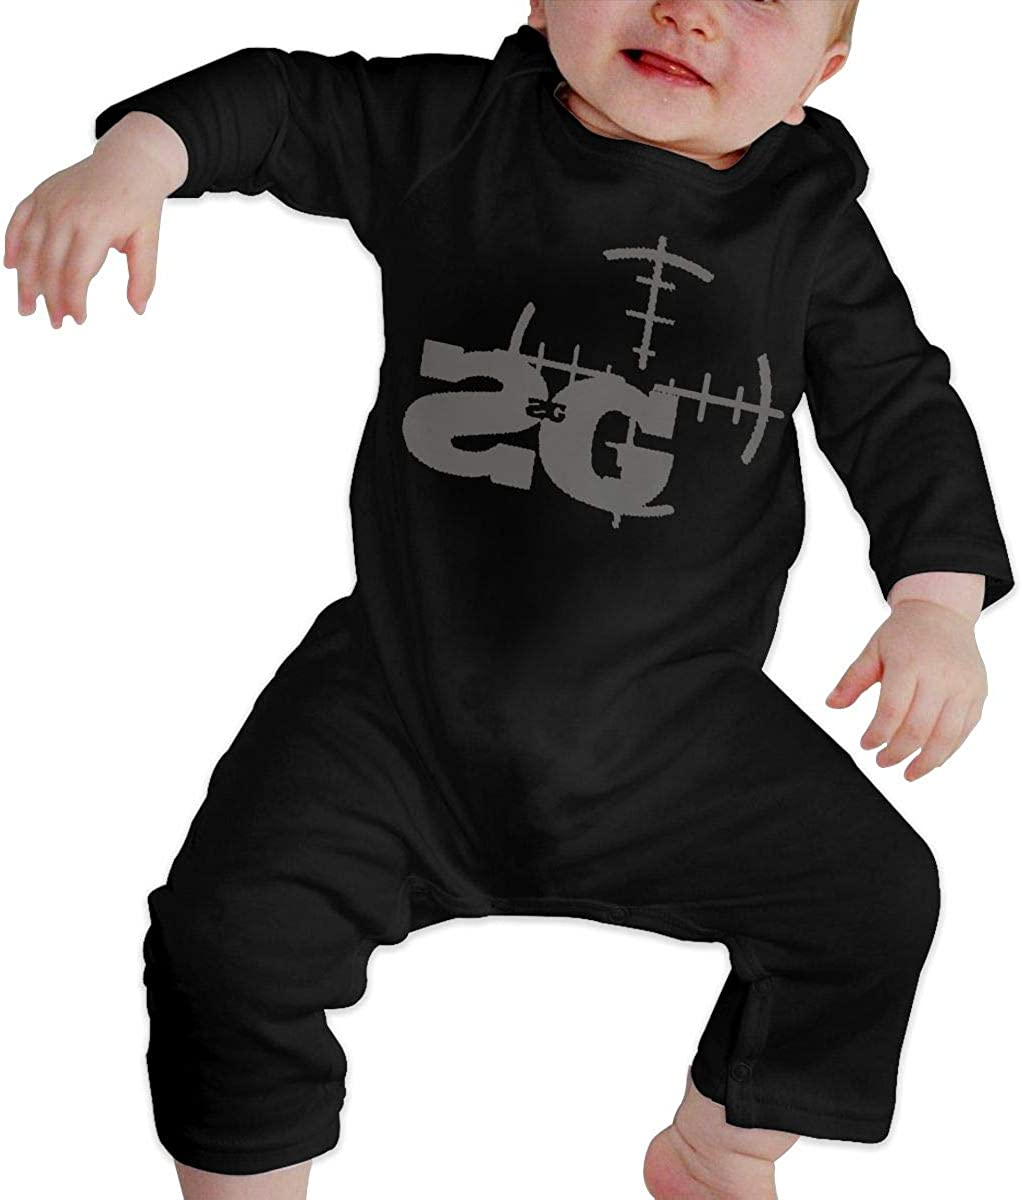 UGFGF-S3 Billy Goat Baby Boy Long Sleeve Romper Jumpsuit Baby Clothes Onsies